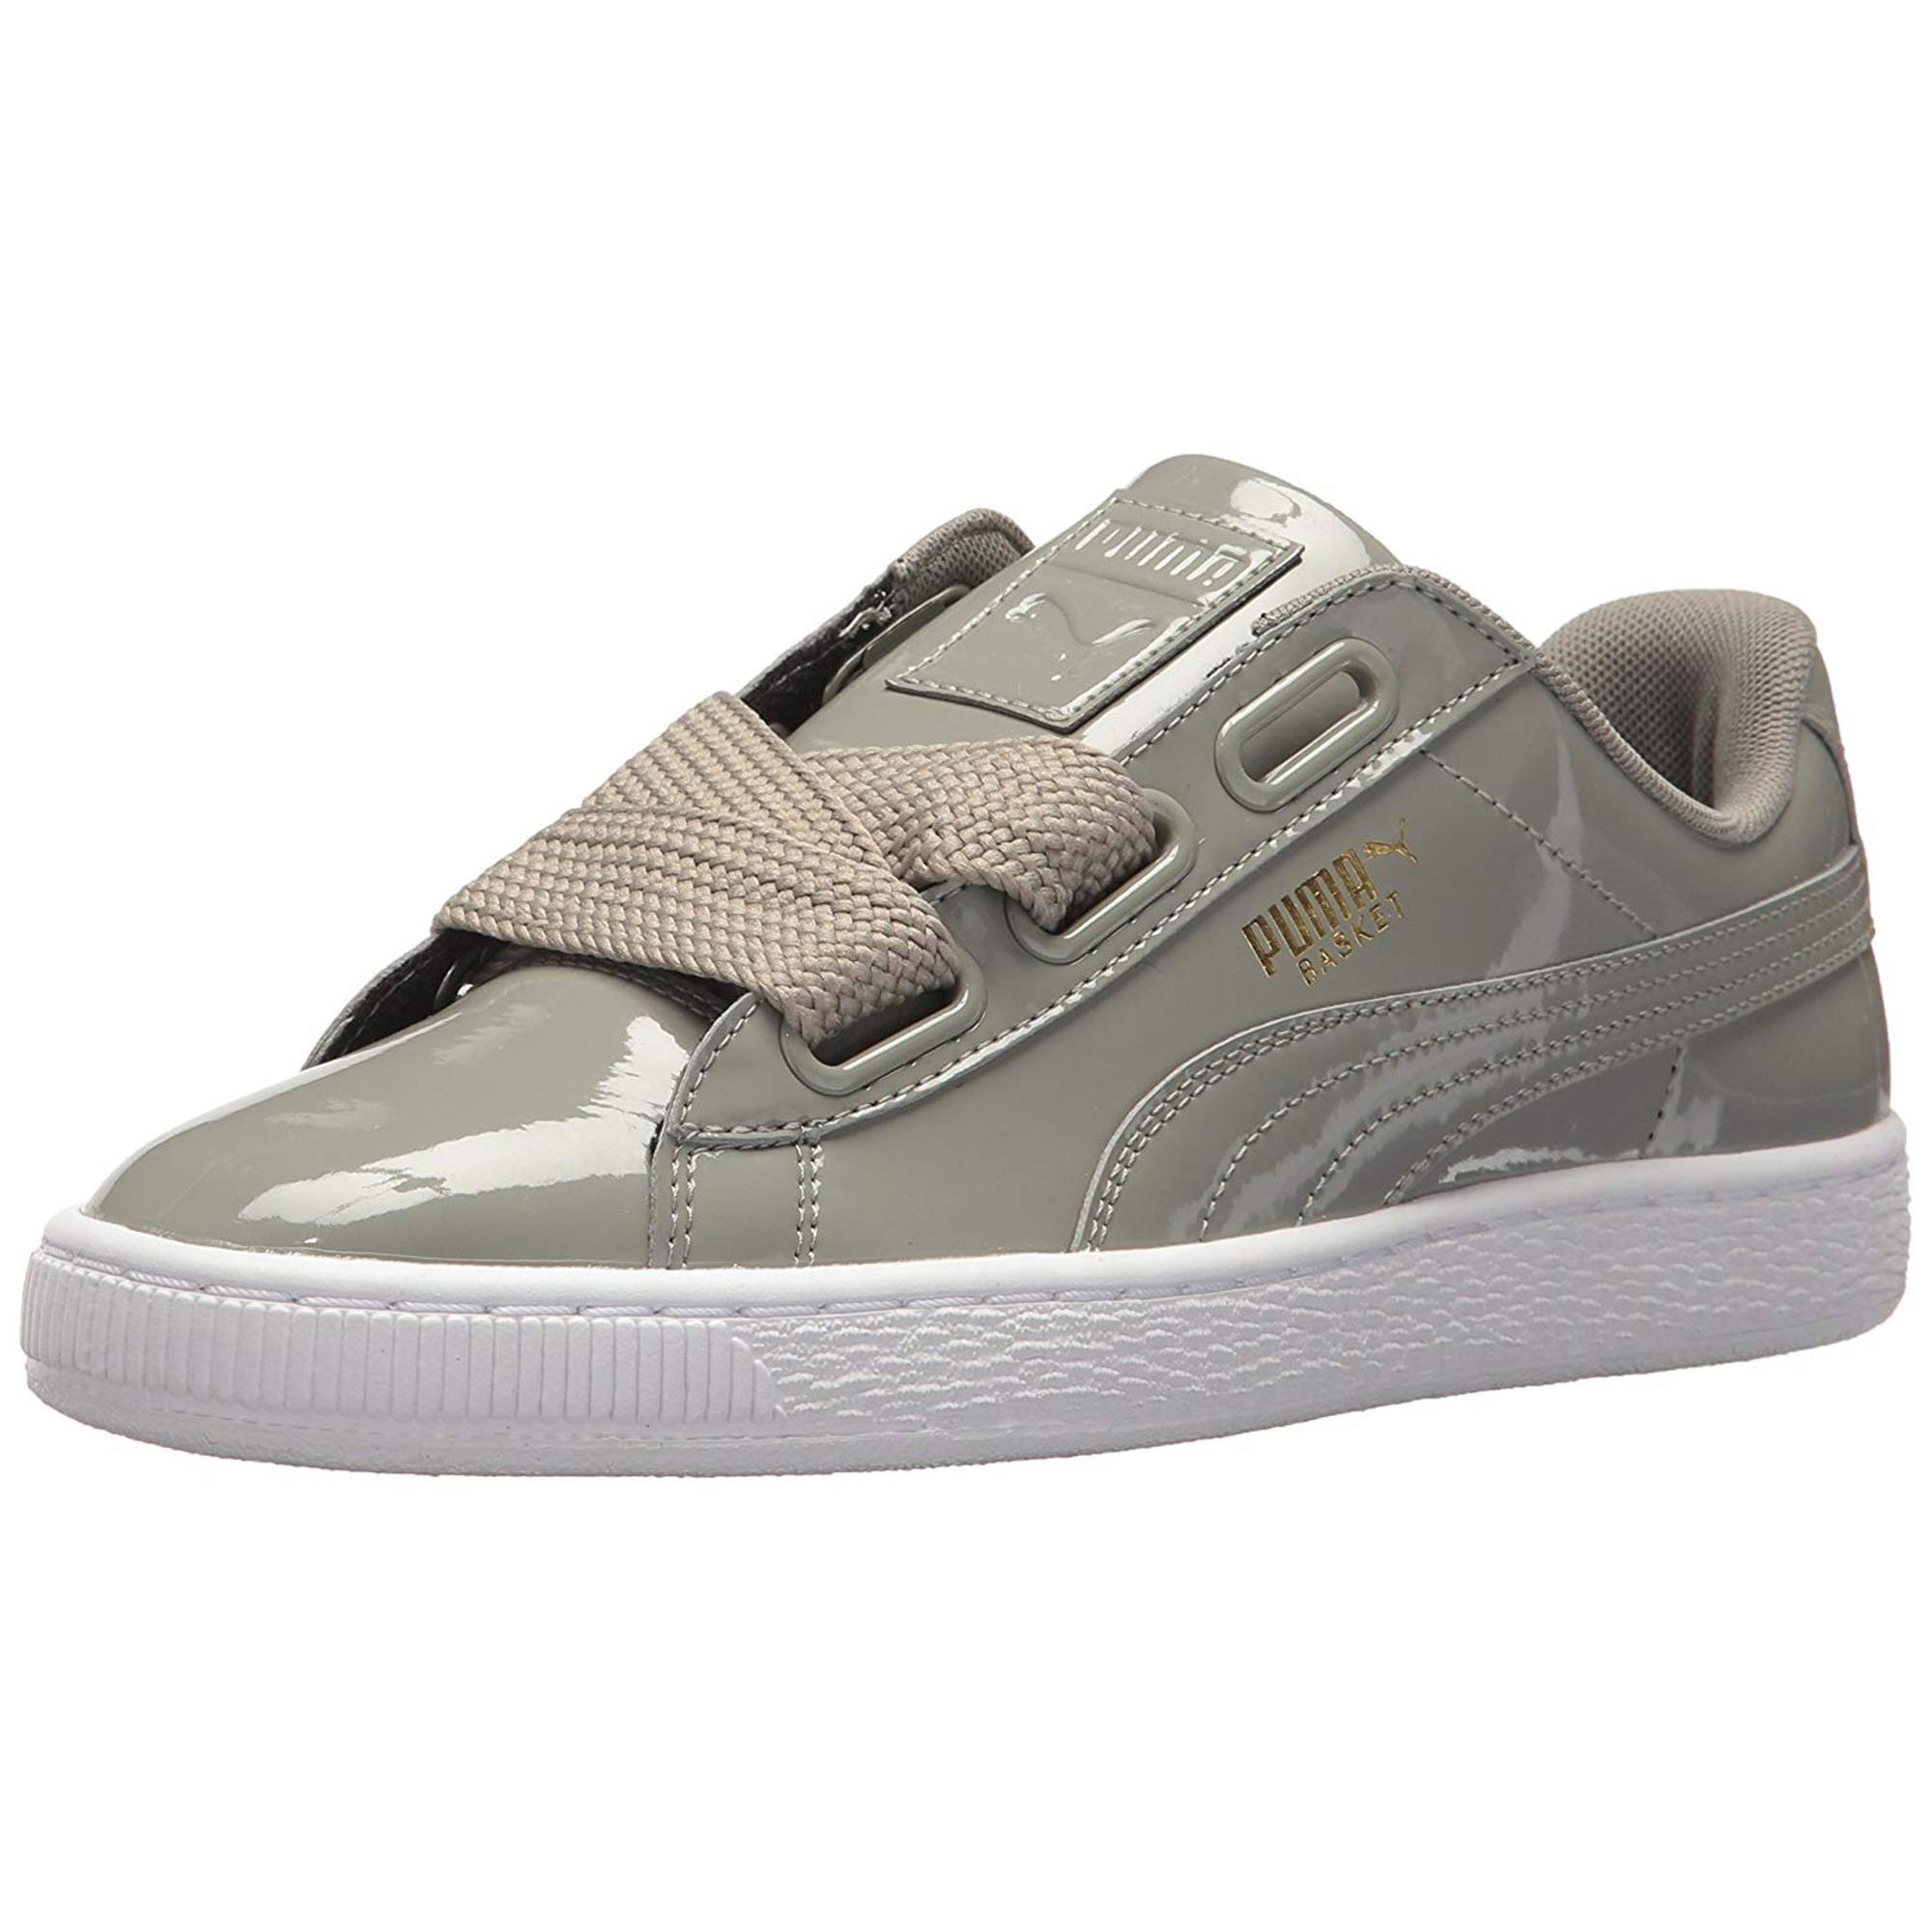 detailed look fec2f f07c7 PUMA Womens basket heart Low Top Lace Up Fashion Sneakers ...